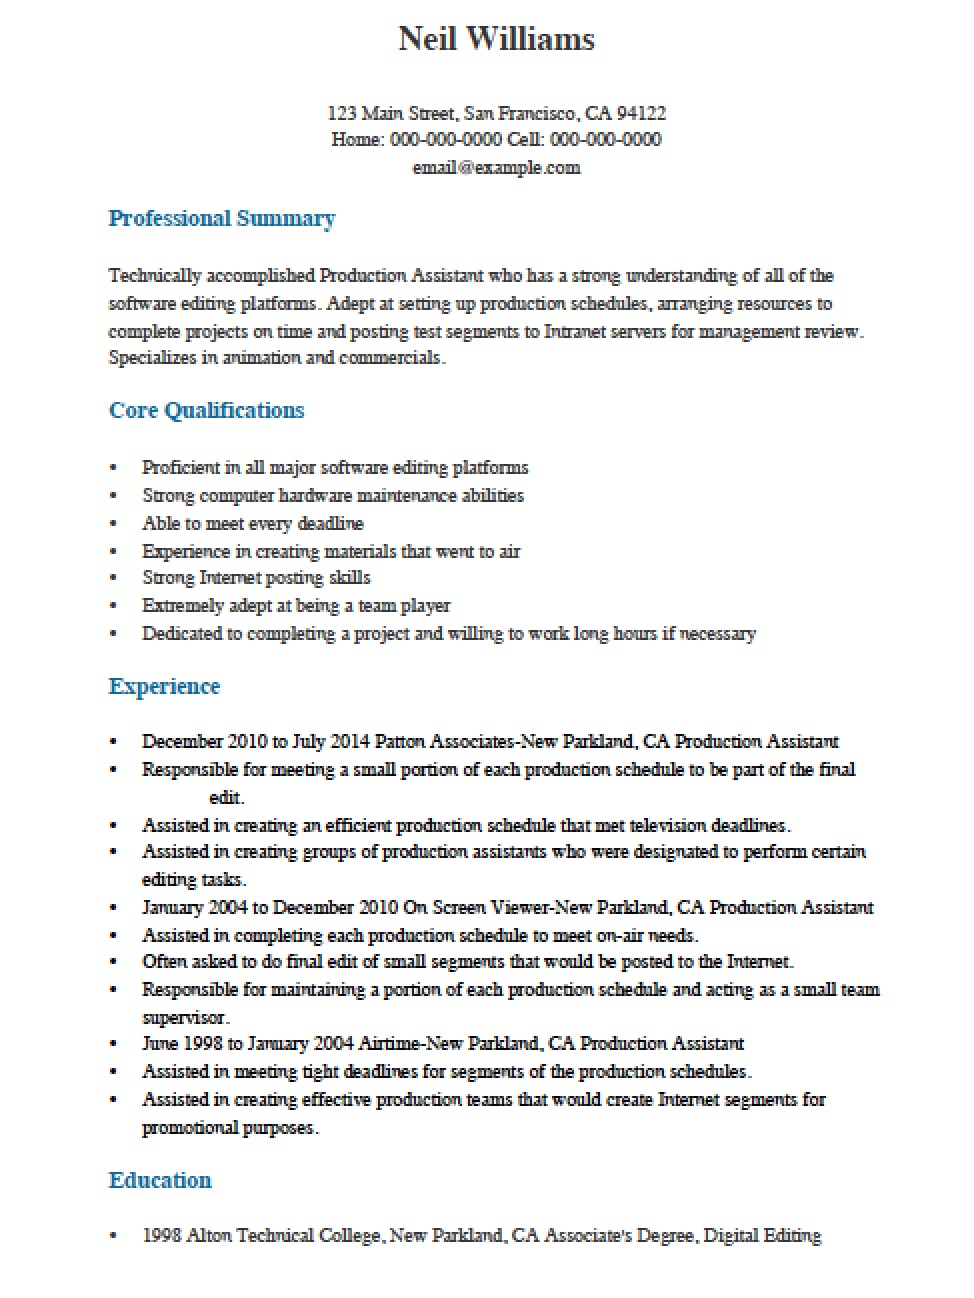 Oral Surgery Assistant Resume Dental Assistant Resume Sample Career Enter  Free Professional Production Assistant Resume Template